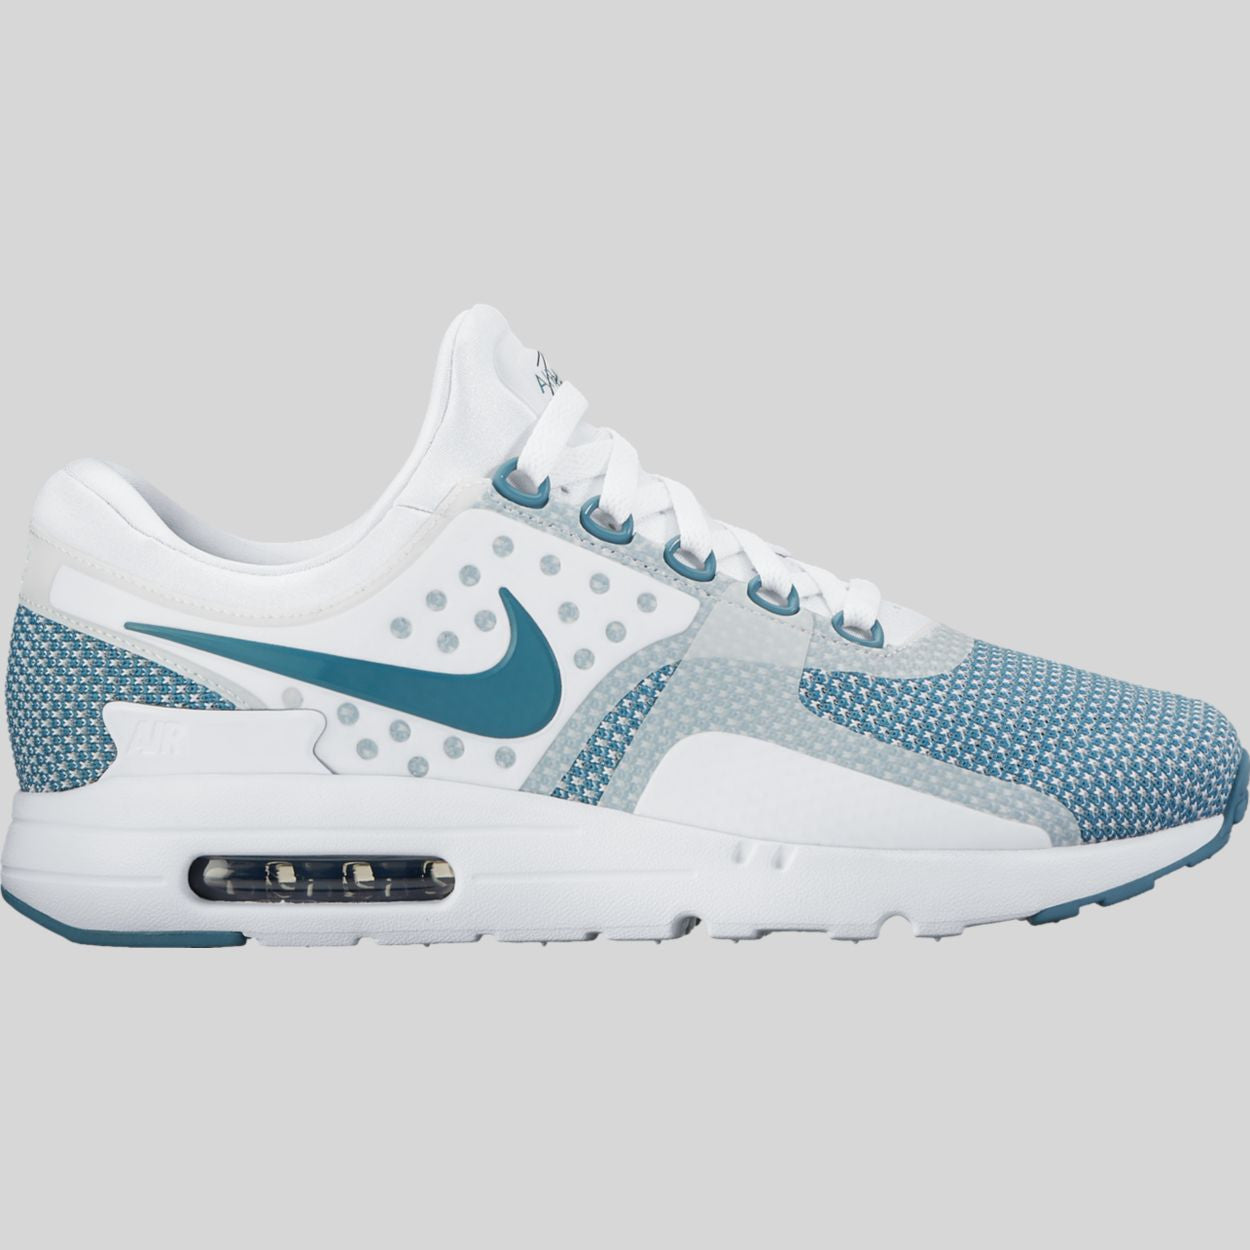 super popular 50230 db552 Nike Air Max Zero Essential Smokey Blue White Obsidian (876070-003)